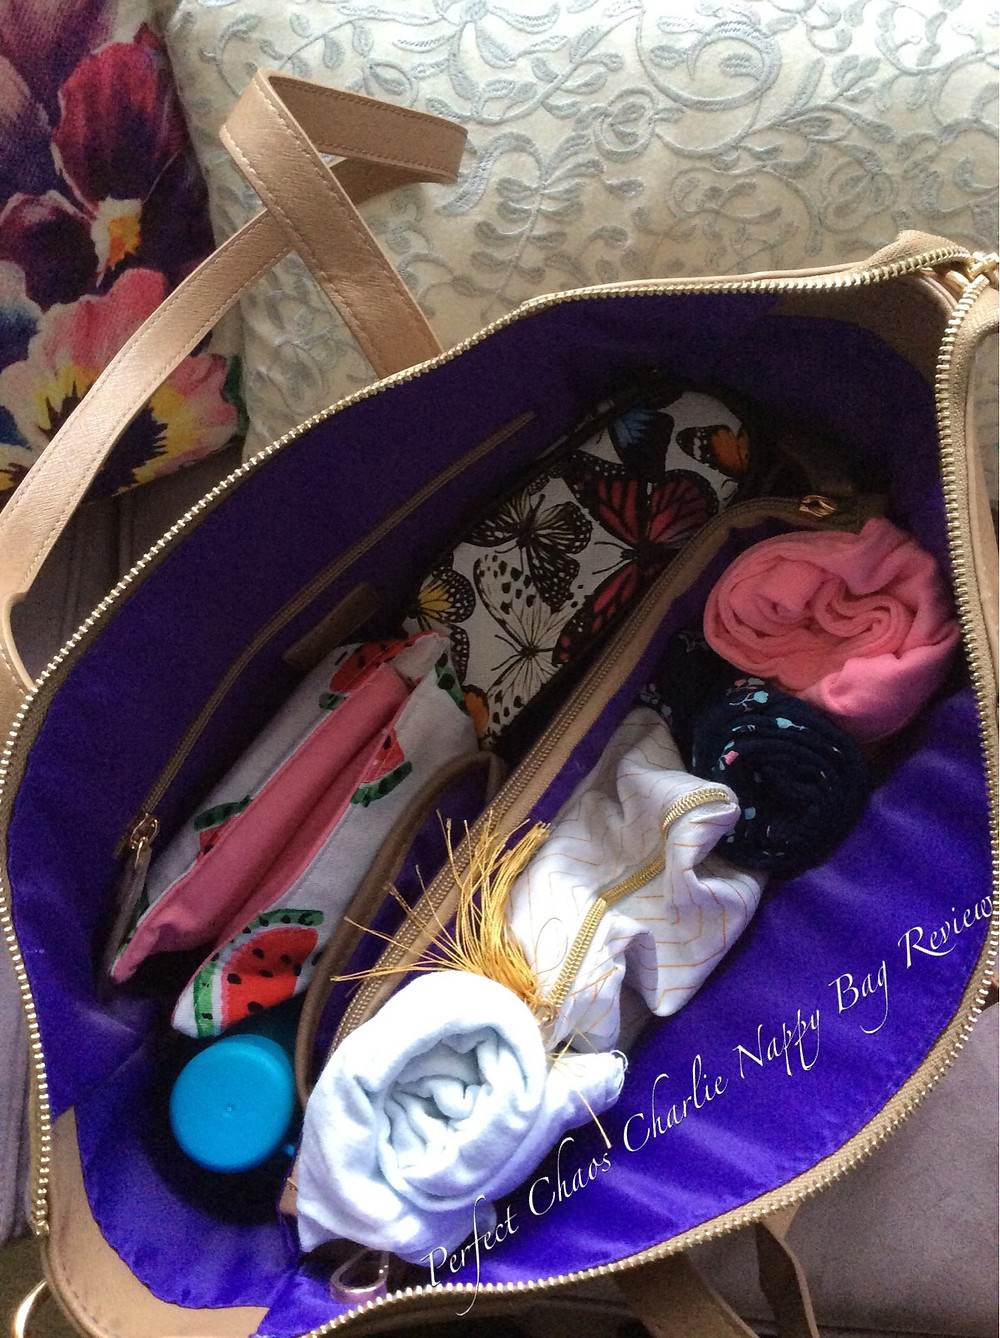 View of bright purple lining inside of a packed Sash & Belle Charlie nappy bag in taupe